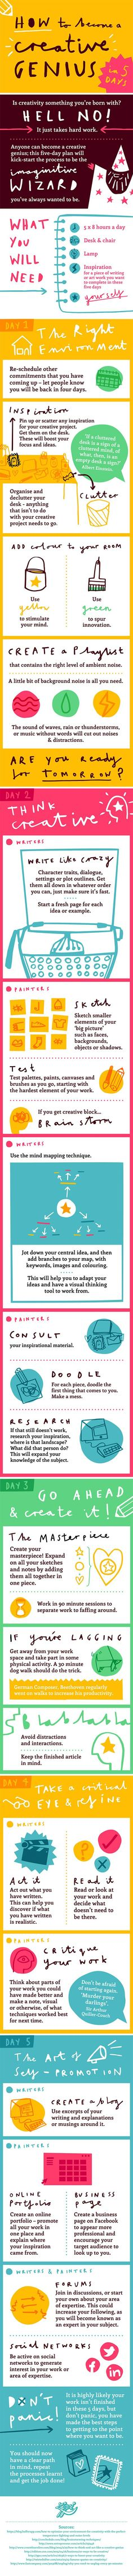 http://Papr.Club - Another cool link is lgexoticauto.com  How to Become a Creative Genius in 5 Days #Infographic